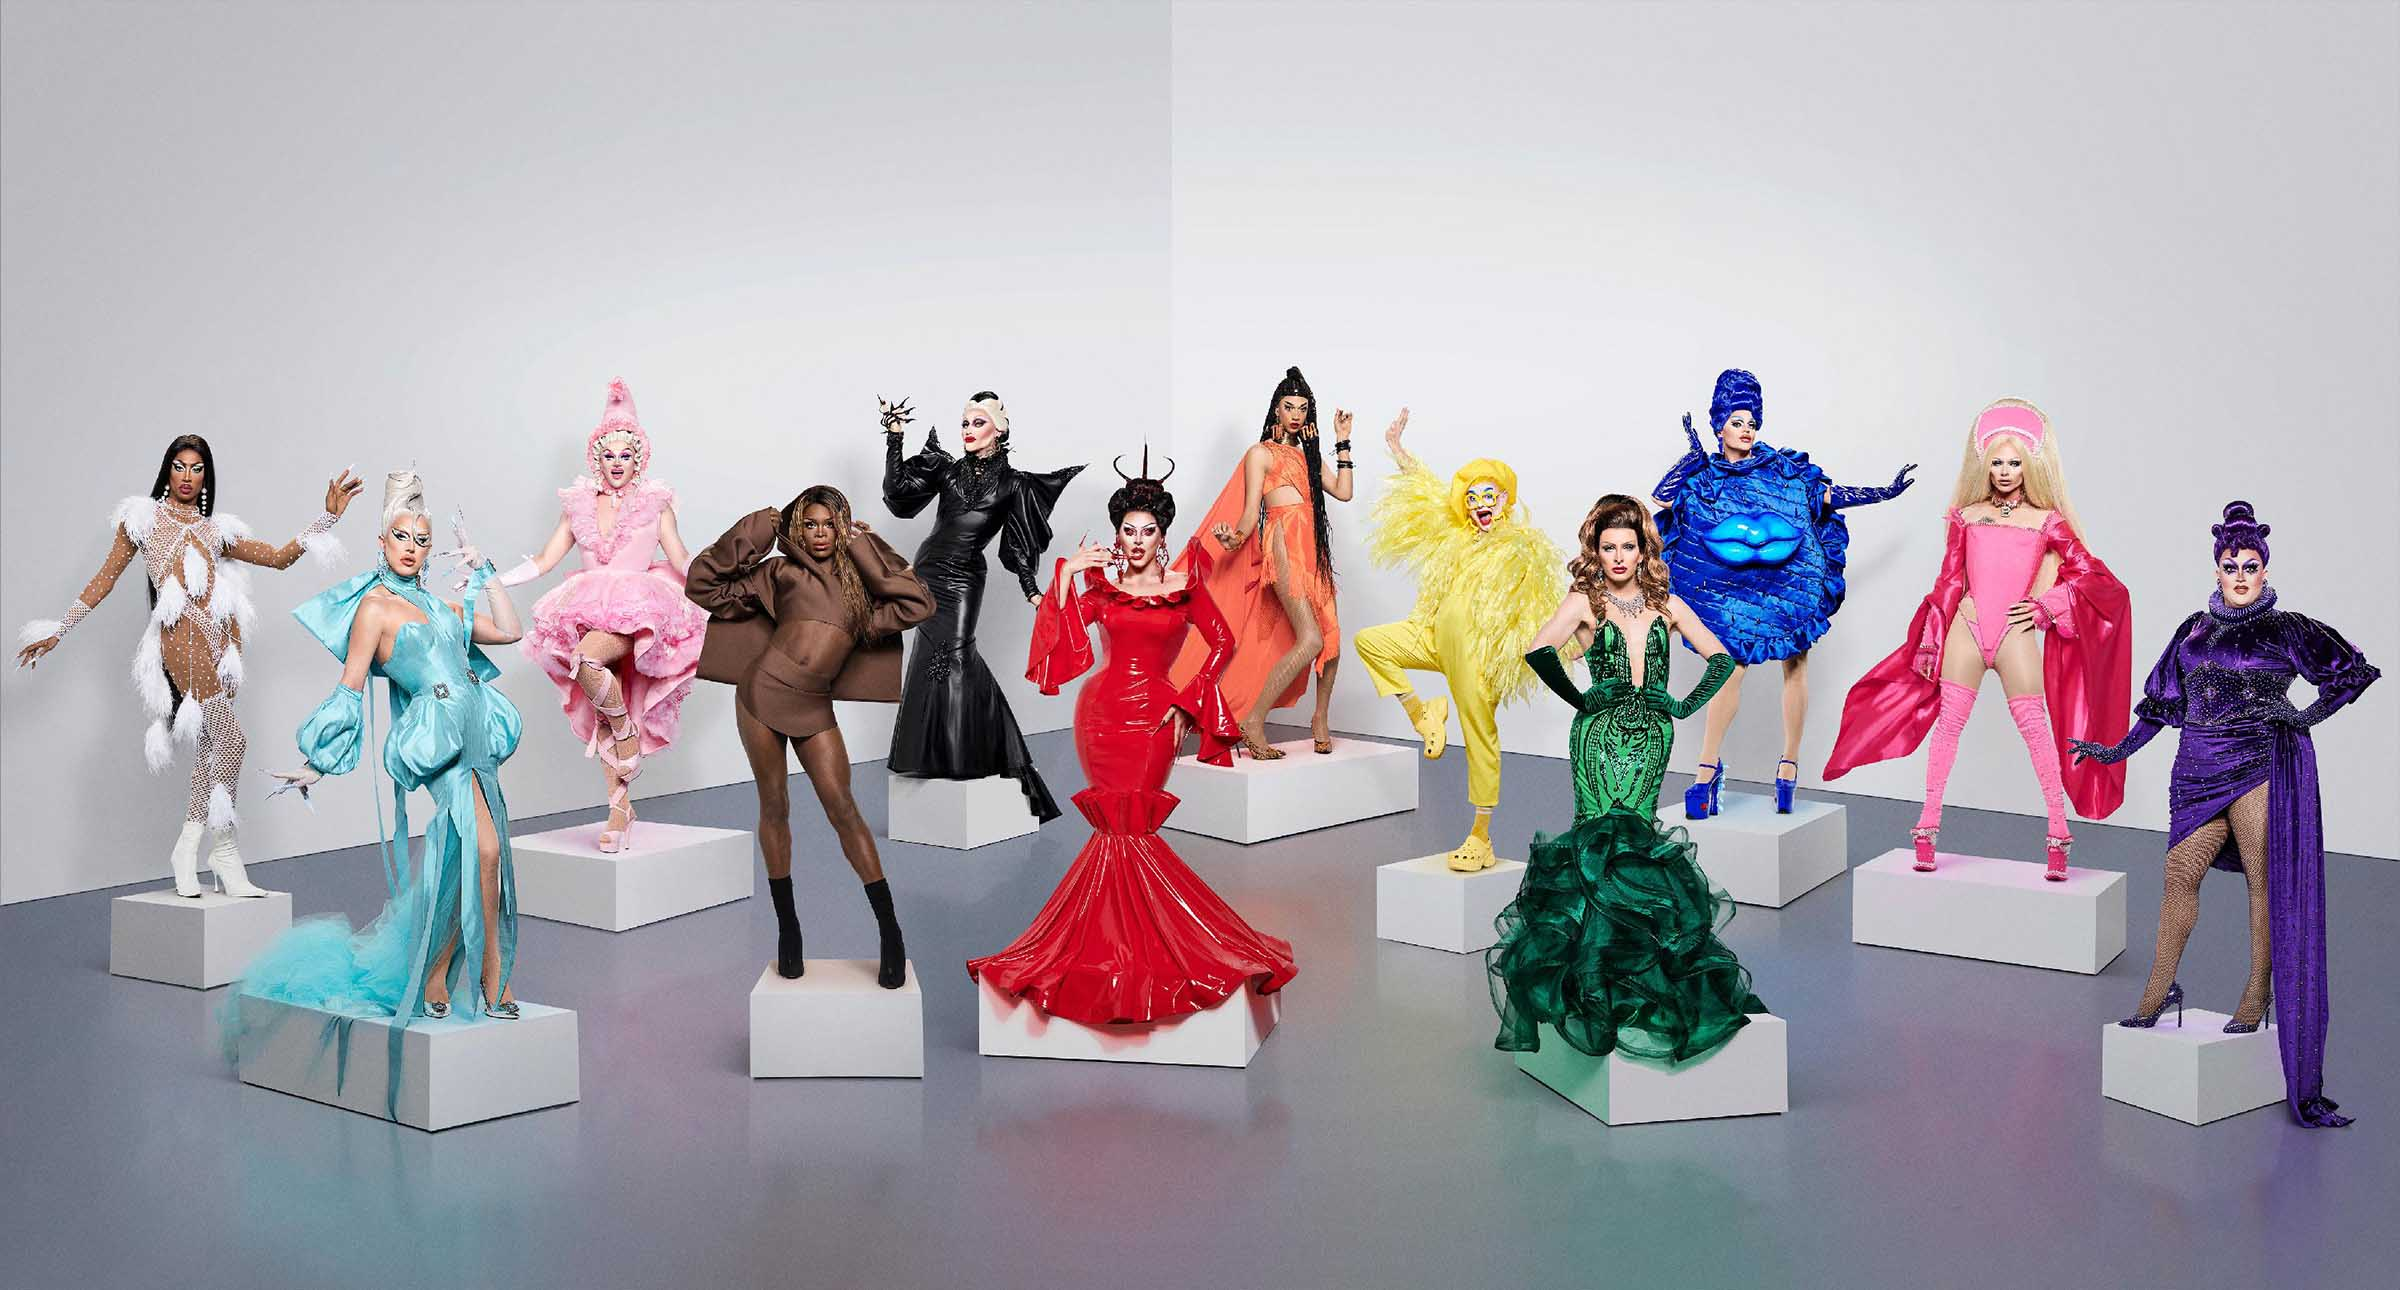 'Drag Race UK' season 2 is in full swing, and the tea is already scalding. Fans are upset this queen was sent home so early, so hear from her personally.